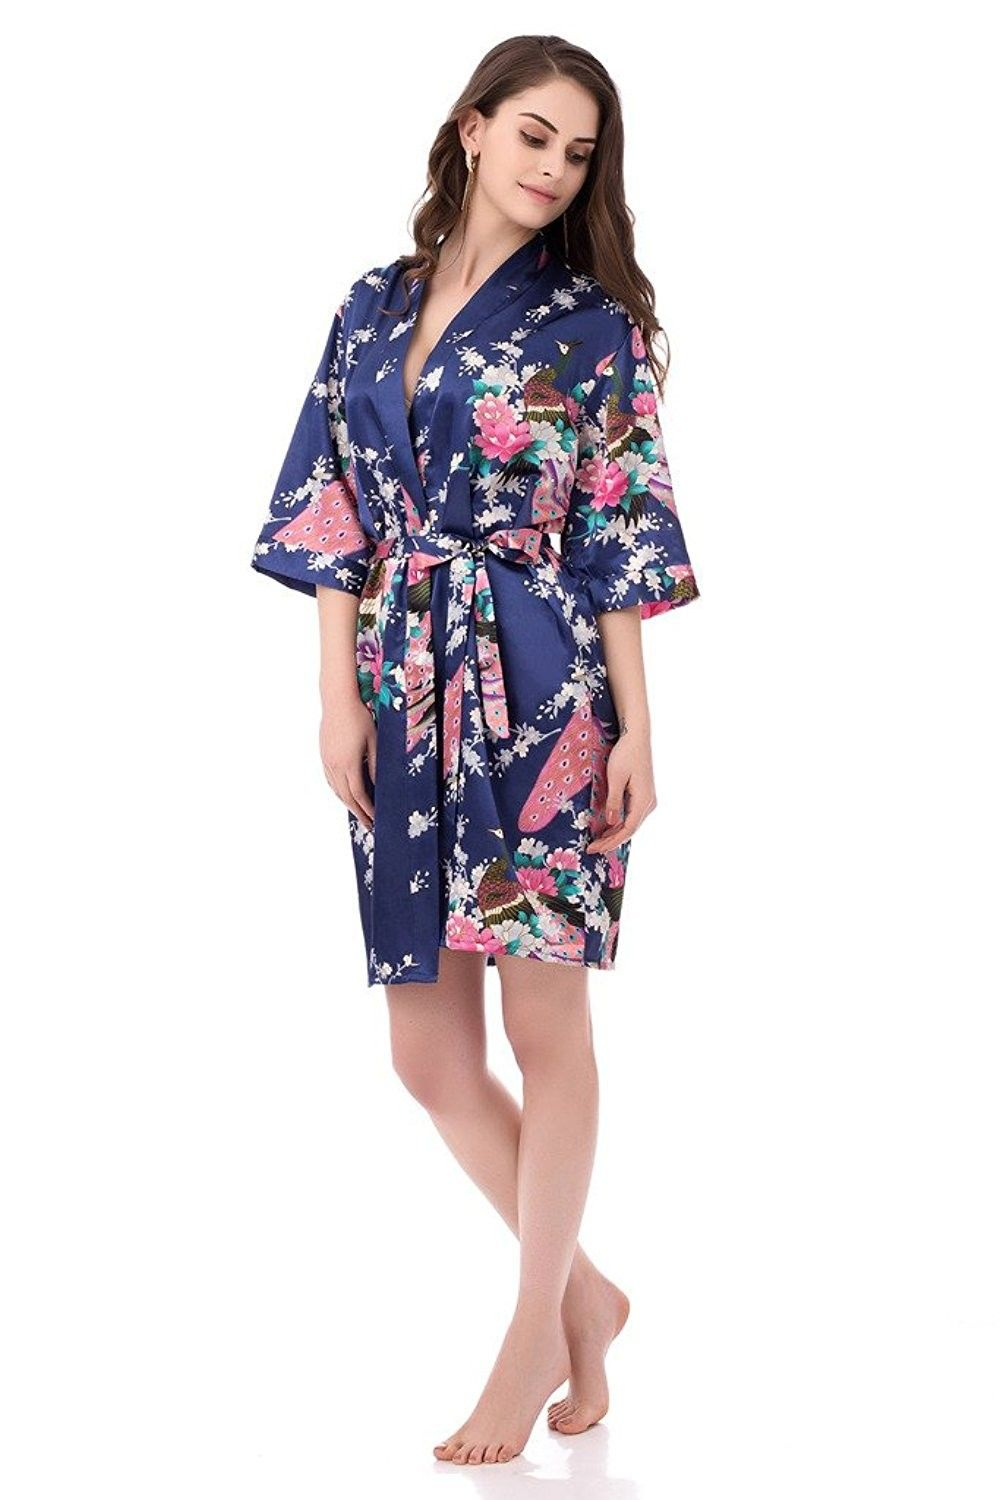 Women s Printing Peacock Kimono Robe Short Sleeve Silk Bridal Robe ... 288998ba0